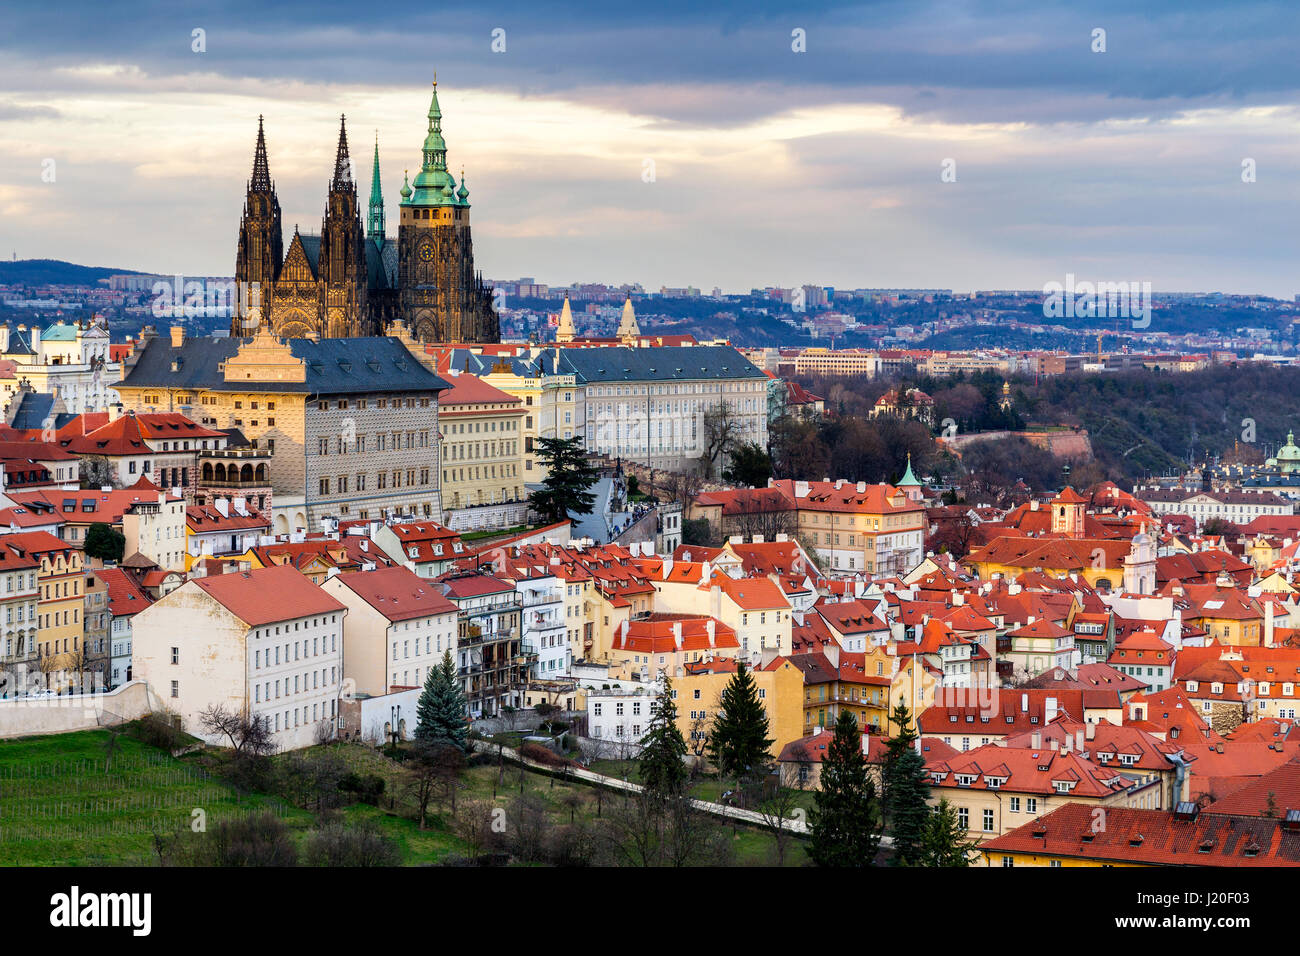 Saint vitus basilica stock photos saint vitus basilica for Where is prague near